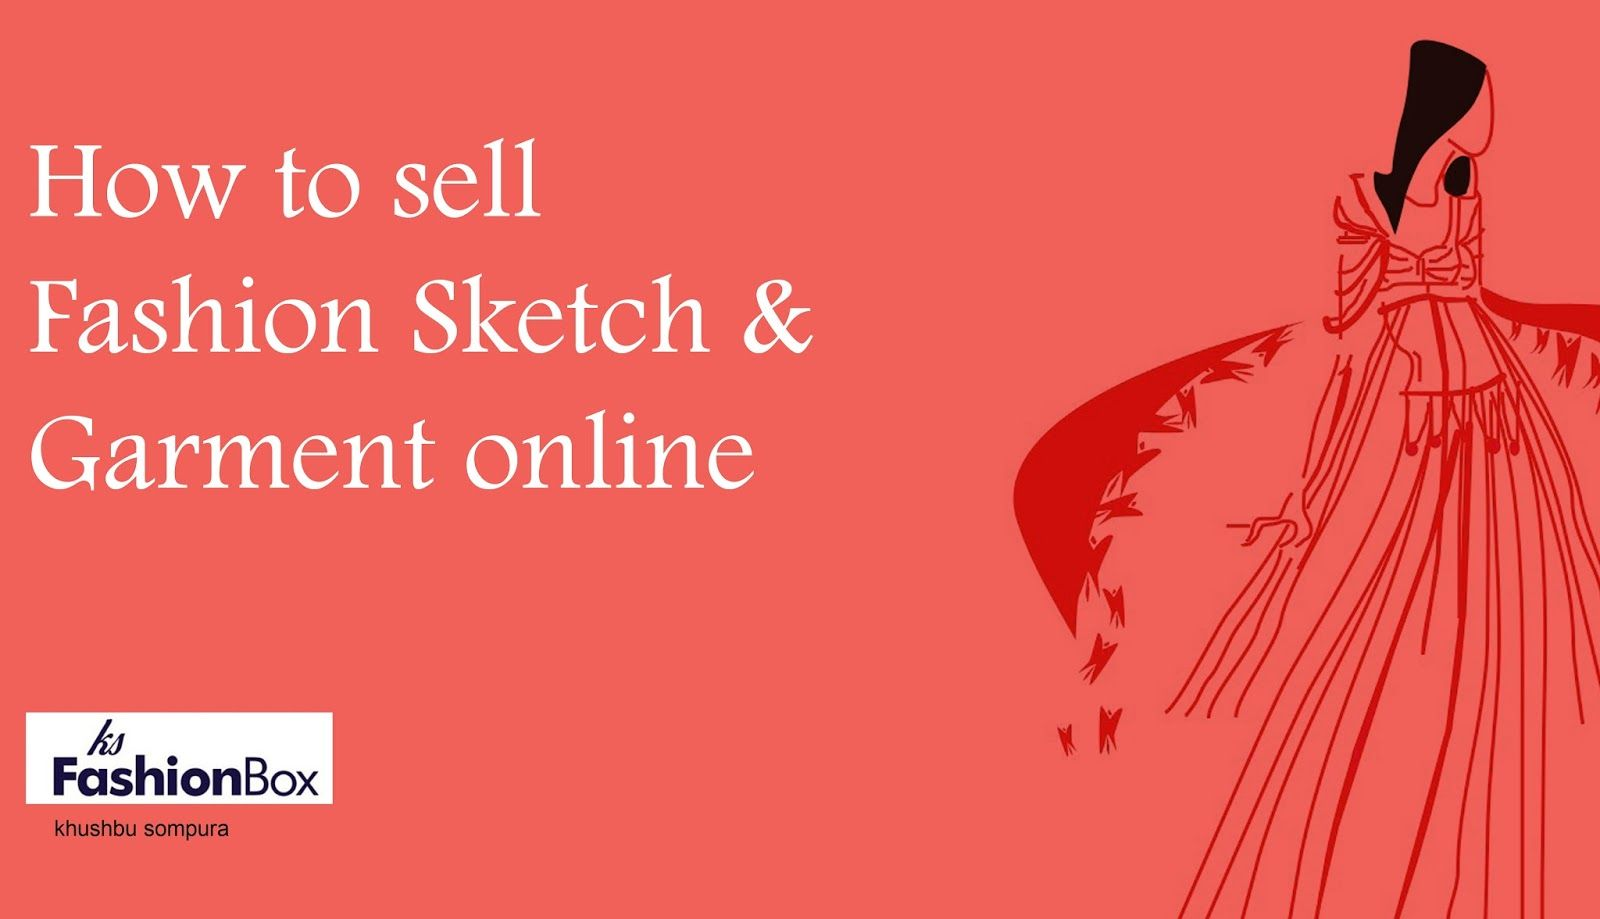 Ksfashionbox How To Sell Fashion Sketch And Garment Online With Images Fashion Sketches Things To Sell Sketches